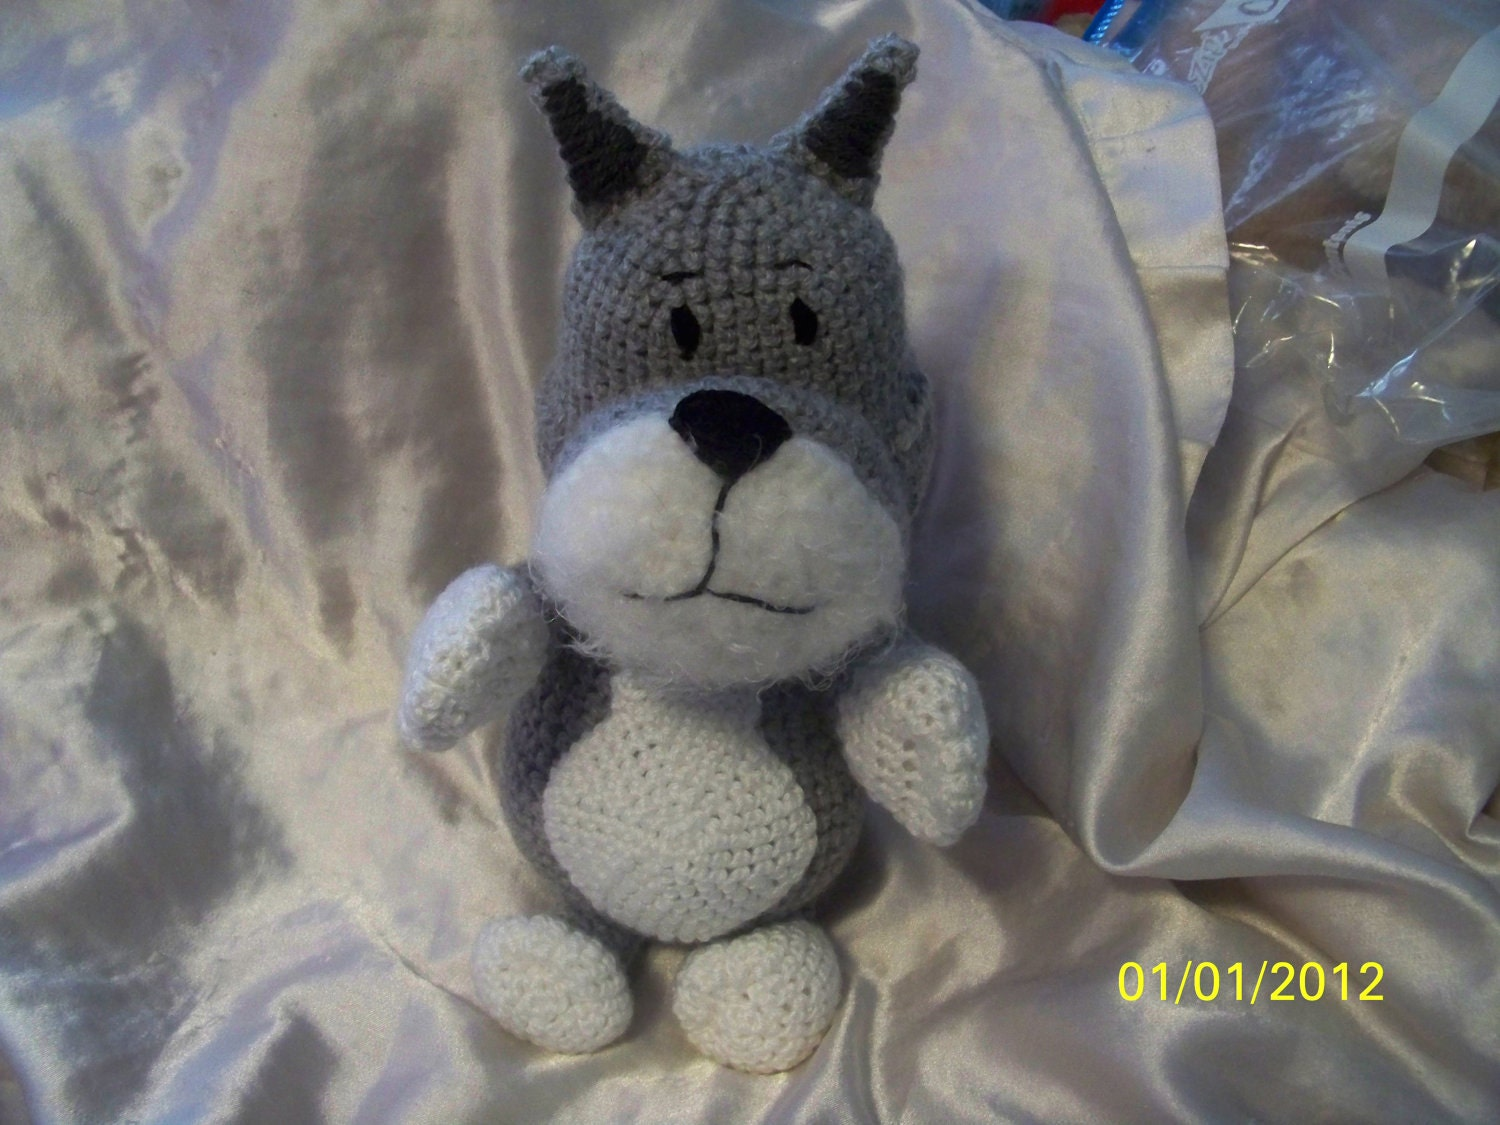 Popular items for Crocheted for Dog on Etsy